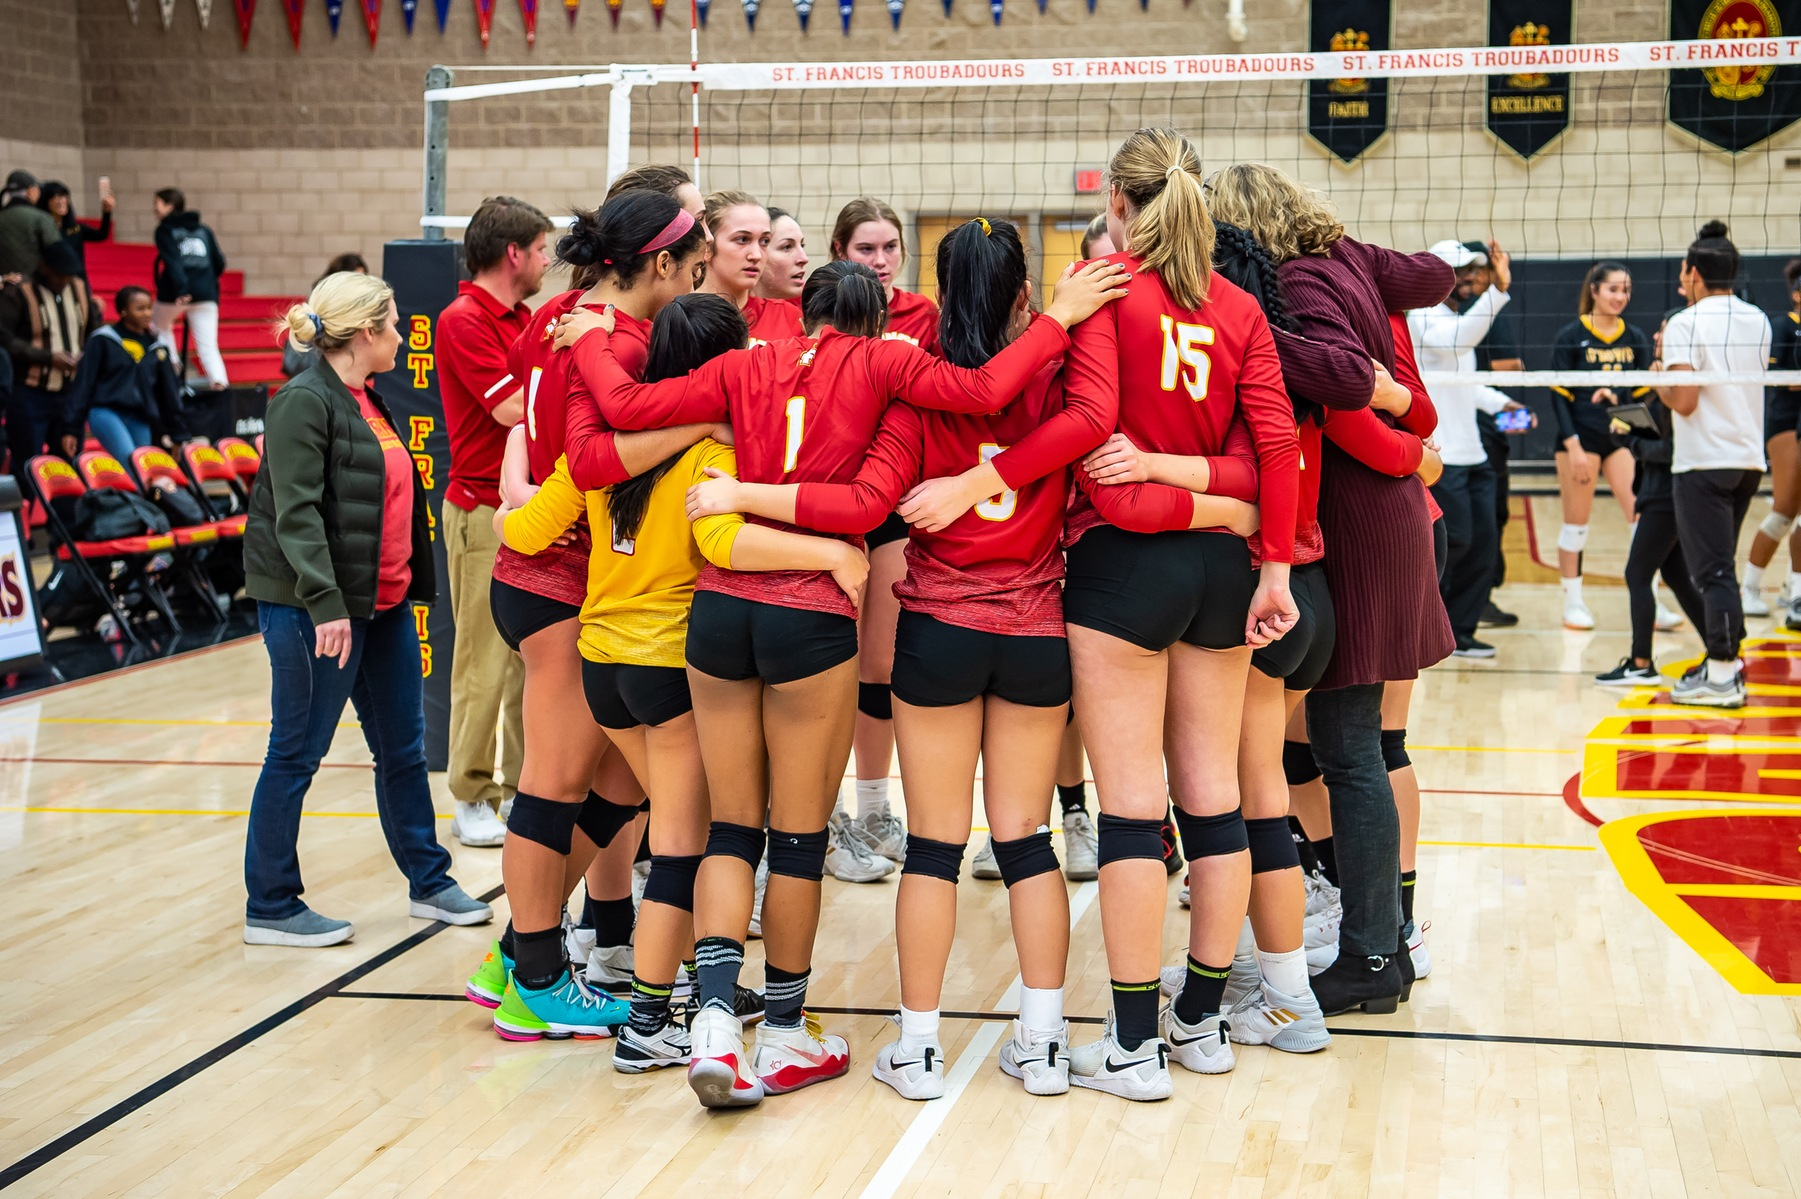 Volleyball Ends Season on 3-0 Loss to Bishop O'Dowd in CIF Open Quarters